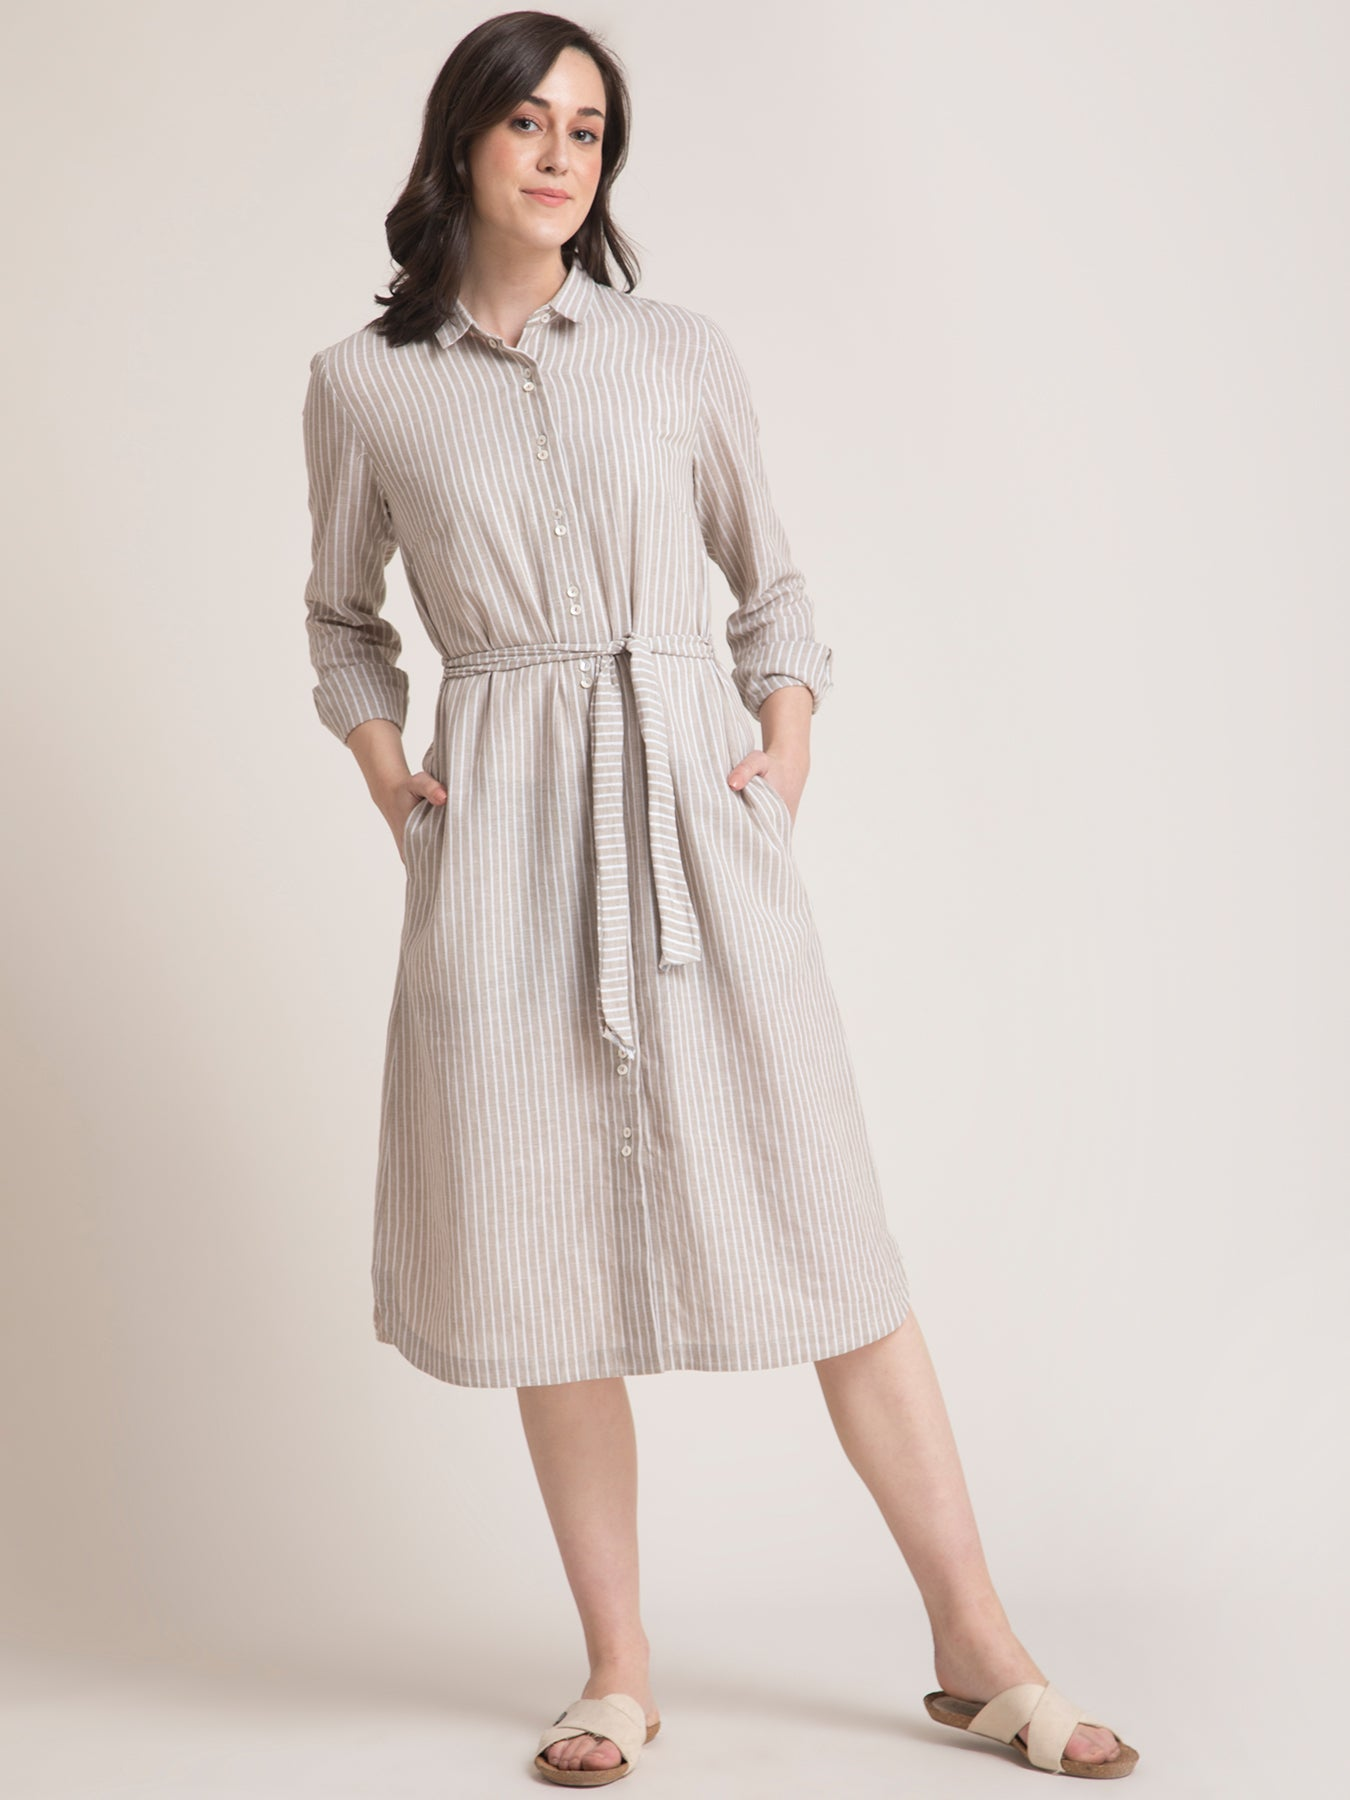 Linen Striped Shirt Dress - Beige and White